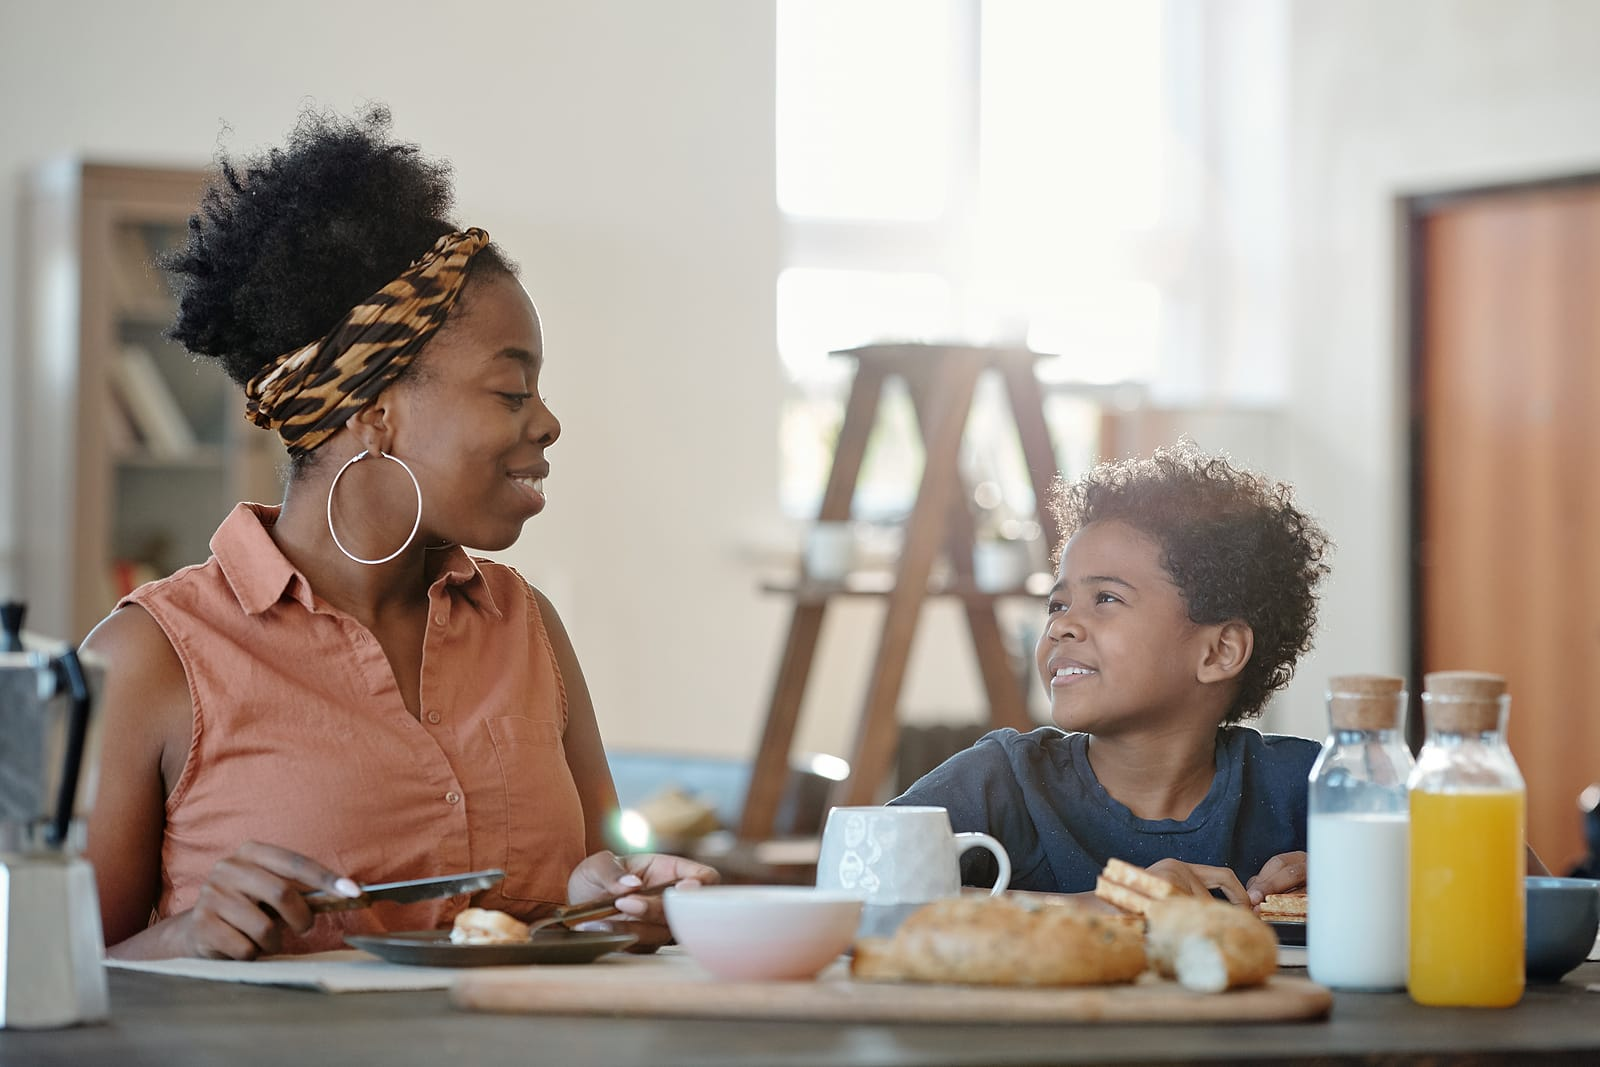 Woman eating breakfast at table with son.